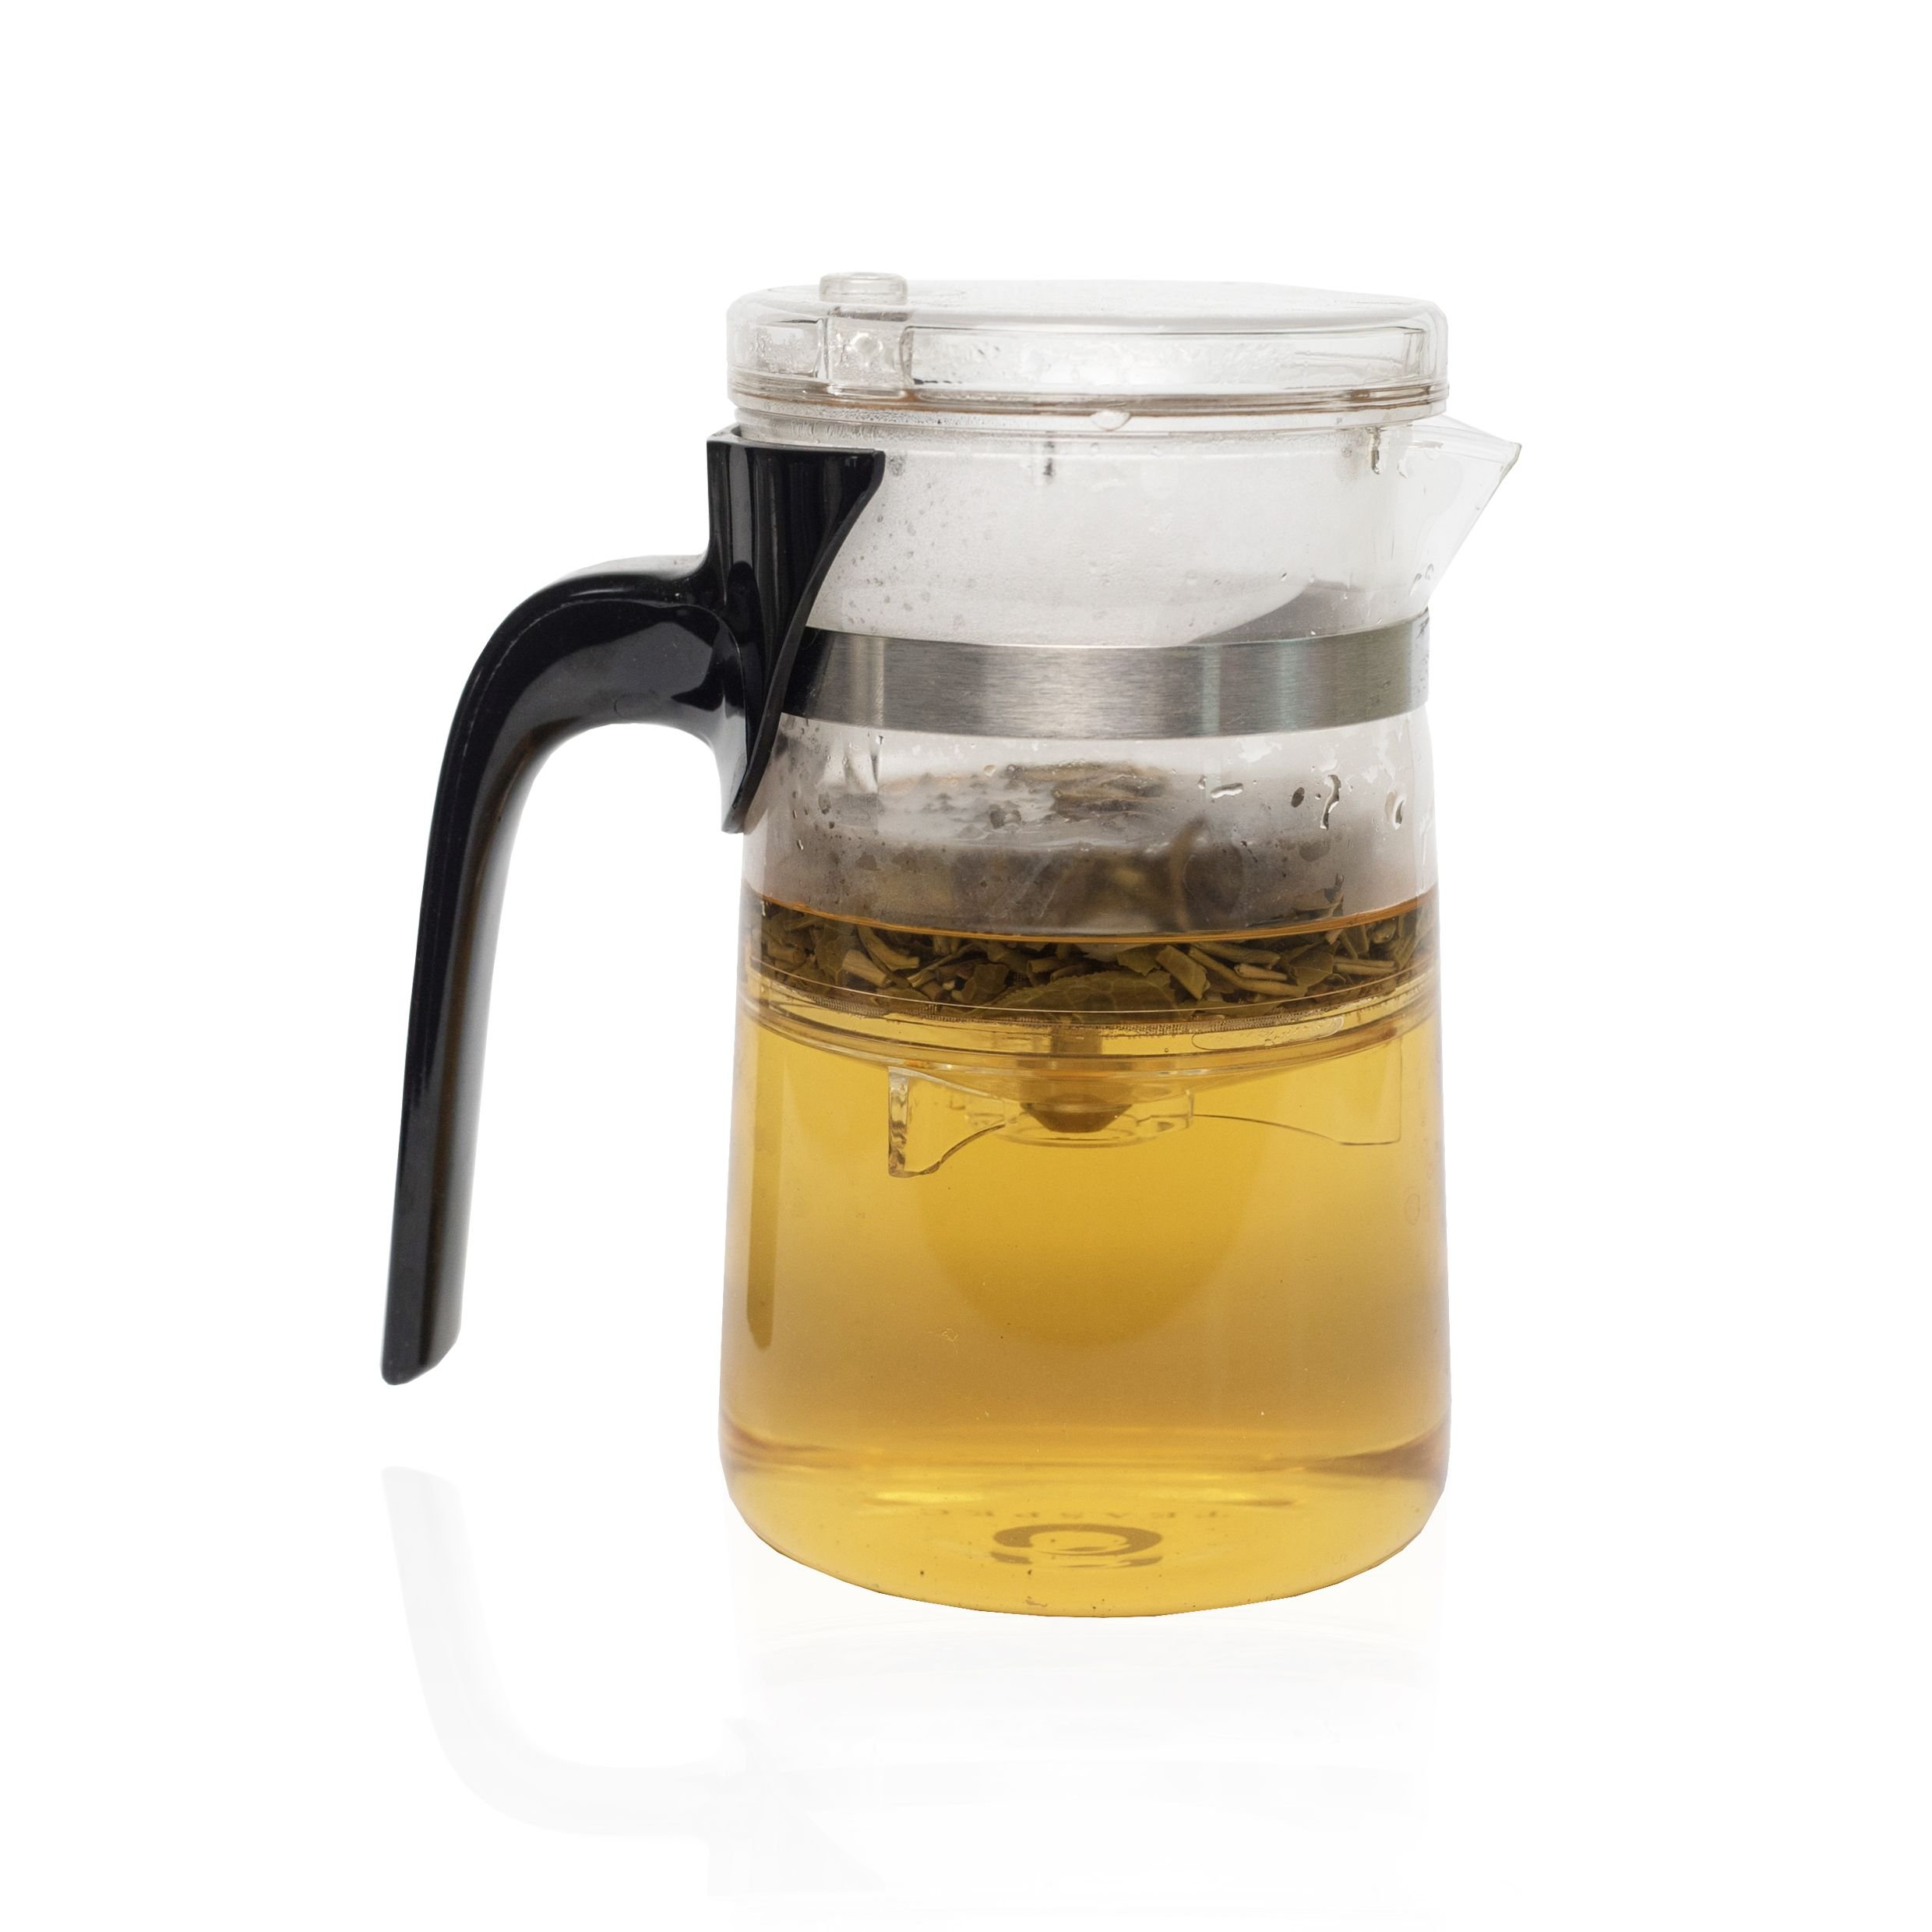 TEASPEC Lazy Pour, Glass Teapot with removable infuser, 500ml